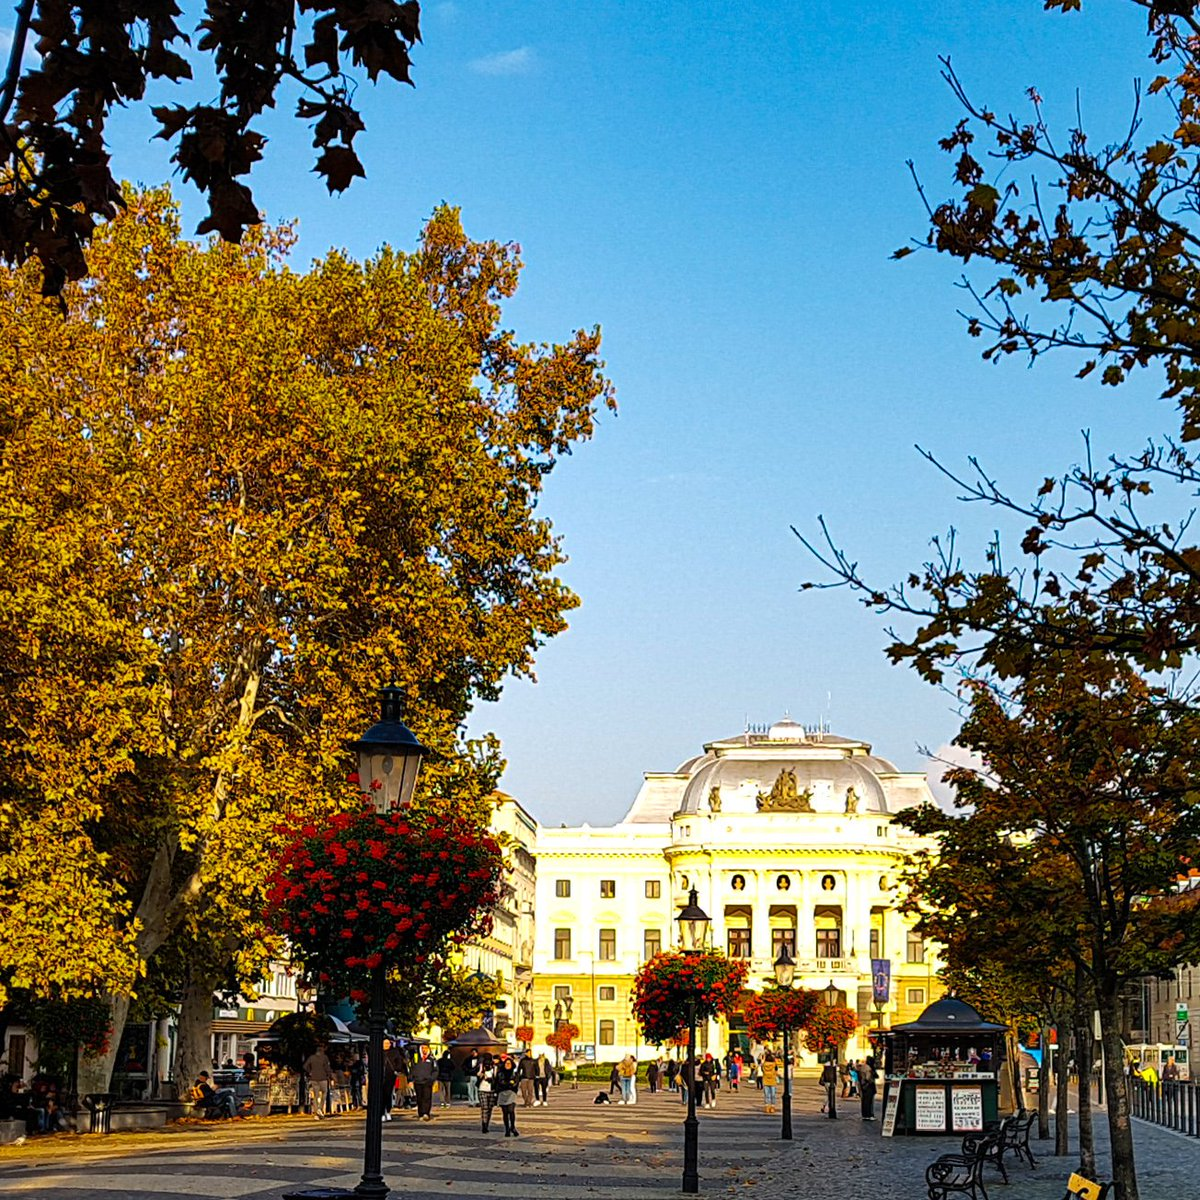 #morningbeautiful is a bright (But really rather chilly) Bratislava with the opera house at the end of the walkway. What a pretty city 😍 #traveltribe #slovakia #travelphotography